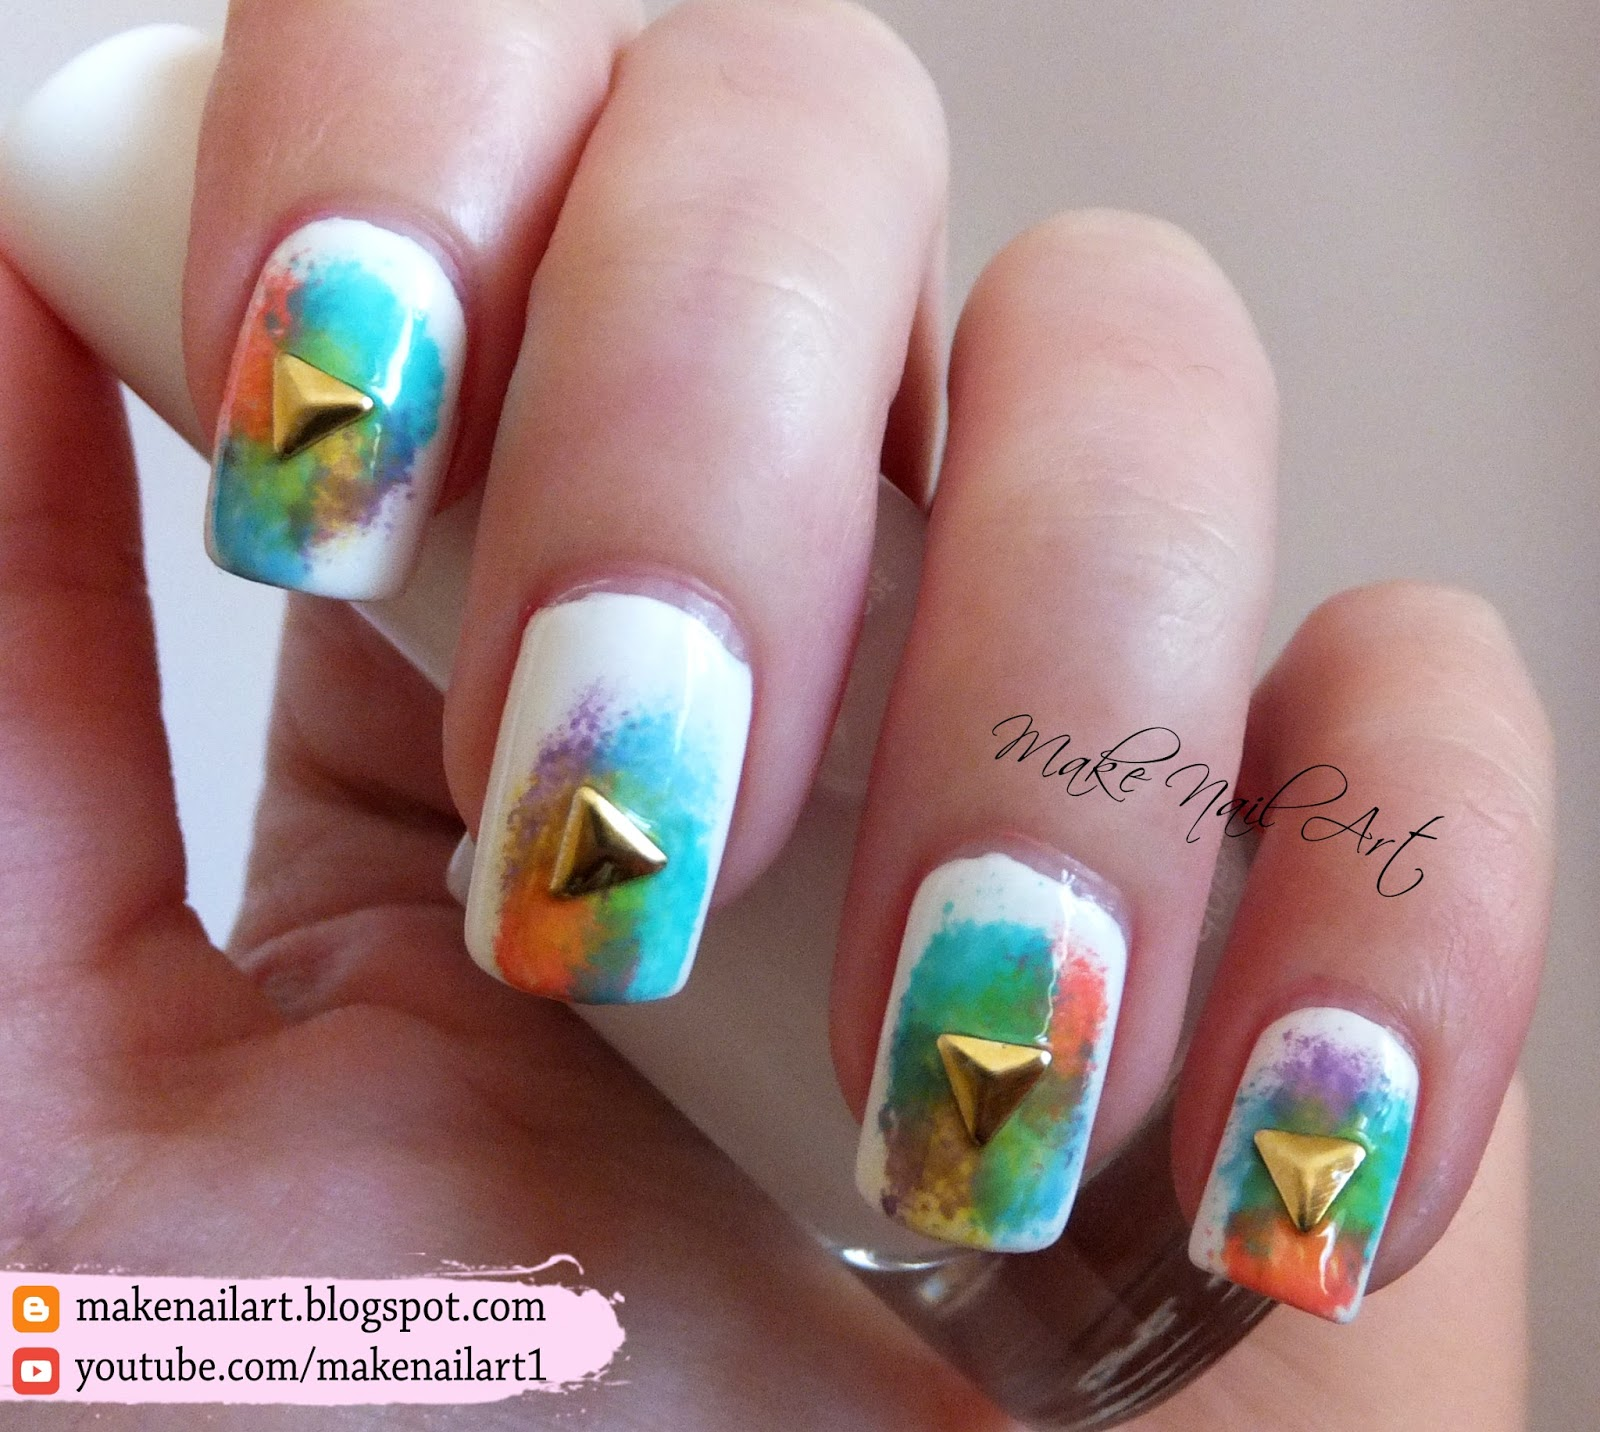 Make Nail Art May 2016